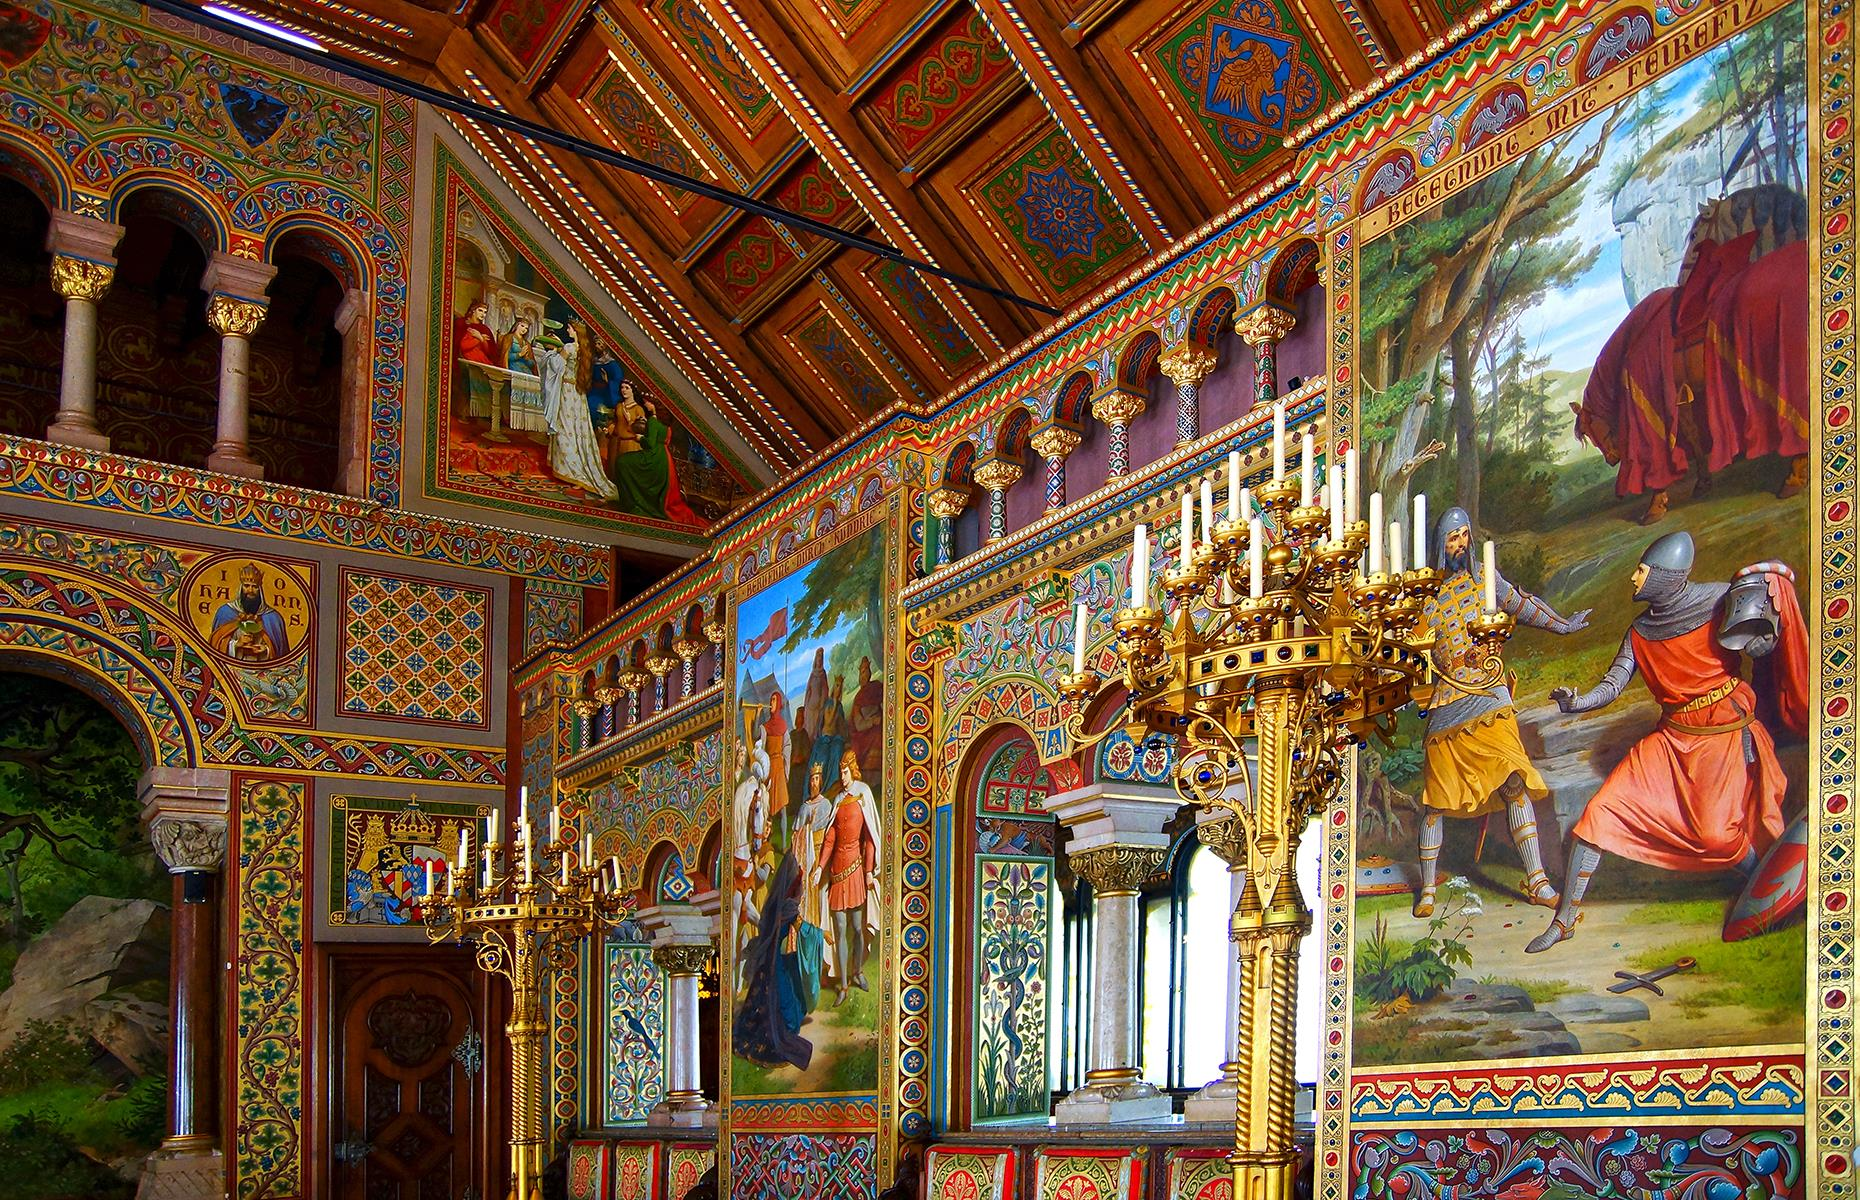 Slide 35 of 53: But the castle was also a dream world for its designer, Ludwig. Neuschwanstein's interiors display Ludwig's desire to escape into the medieval world that inspired the operas of German composer Richard Wagner. The castle is dedicated to Wagner and much of the art inside depicts the kings, poets and knights that appear in the composer's work. Discover Germany's small towns and cities here too.